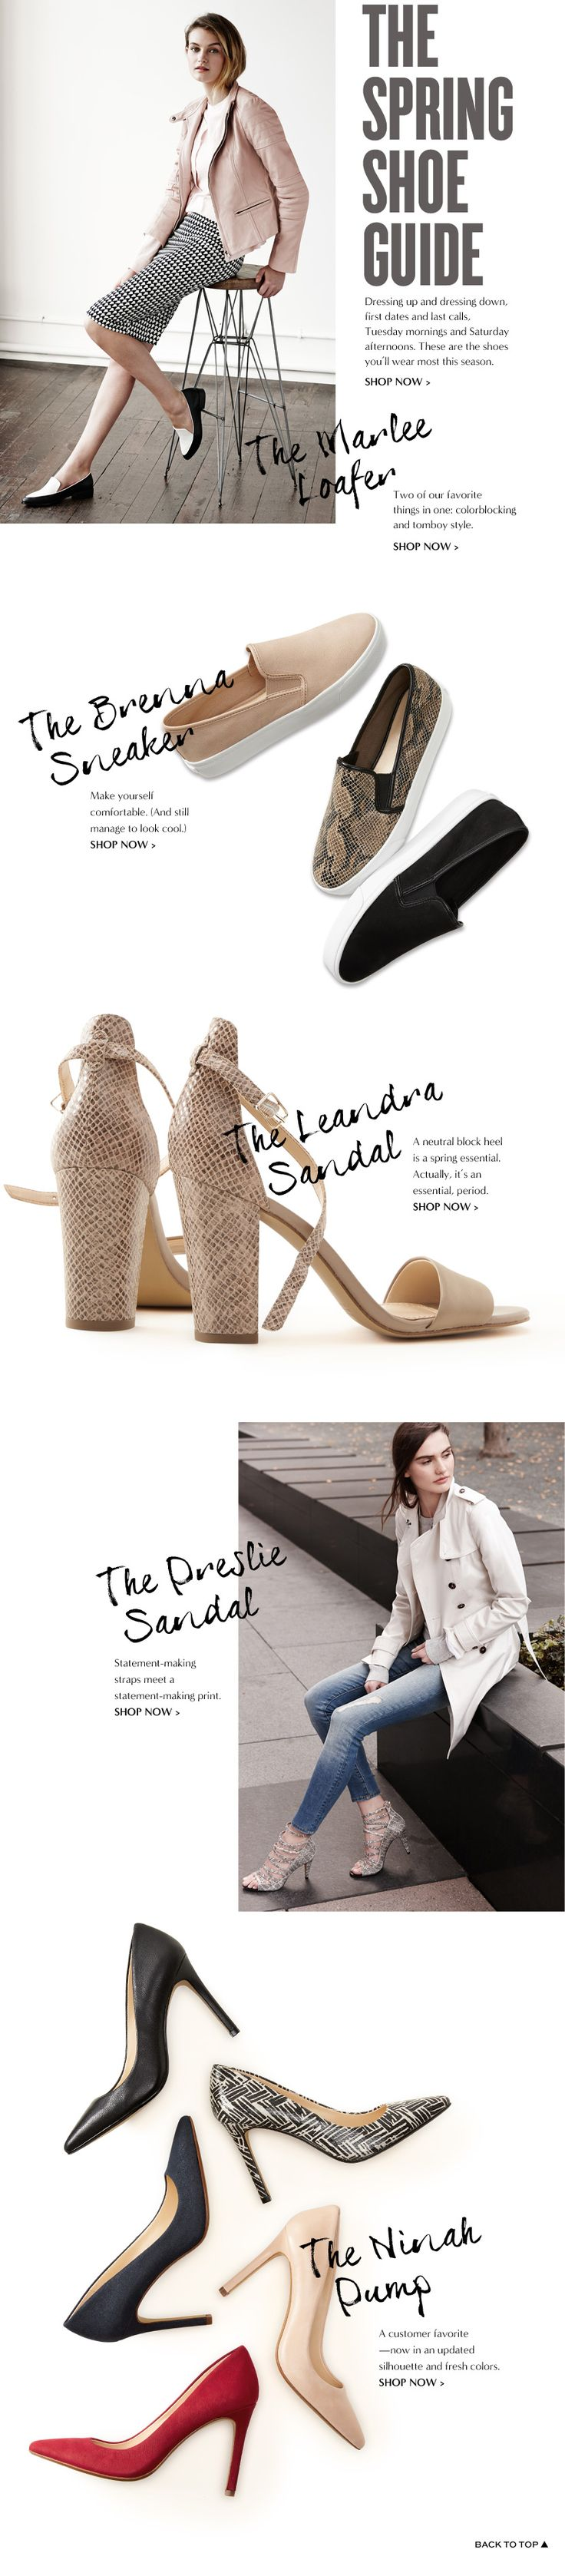 Shoes & Handbags: leather boots, flats, wedges, totes & satchels | Banana Republic